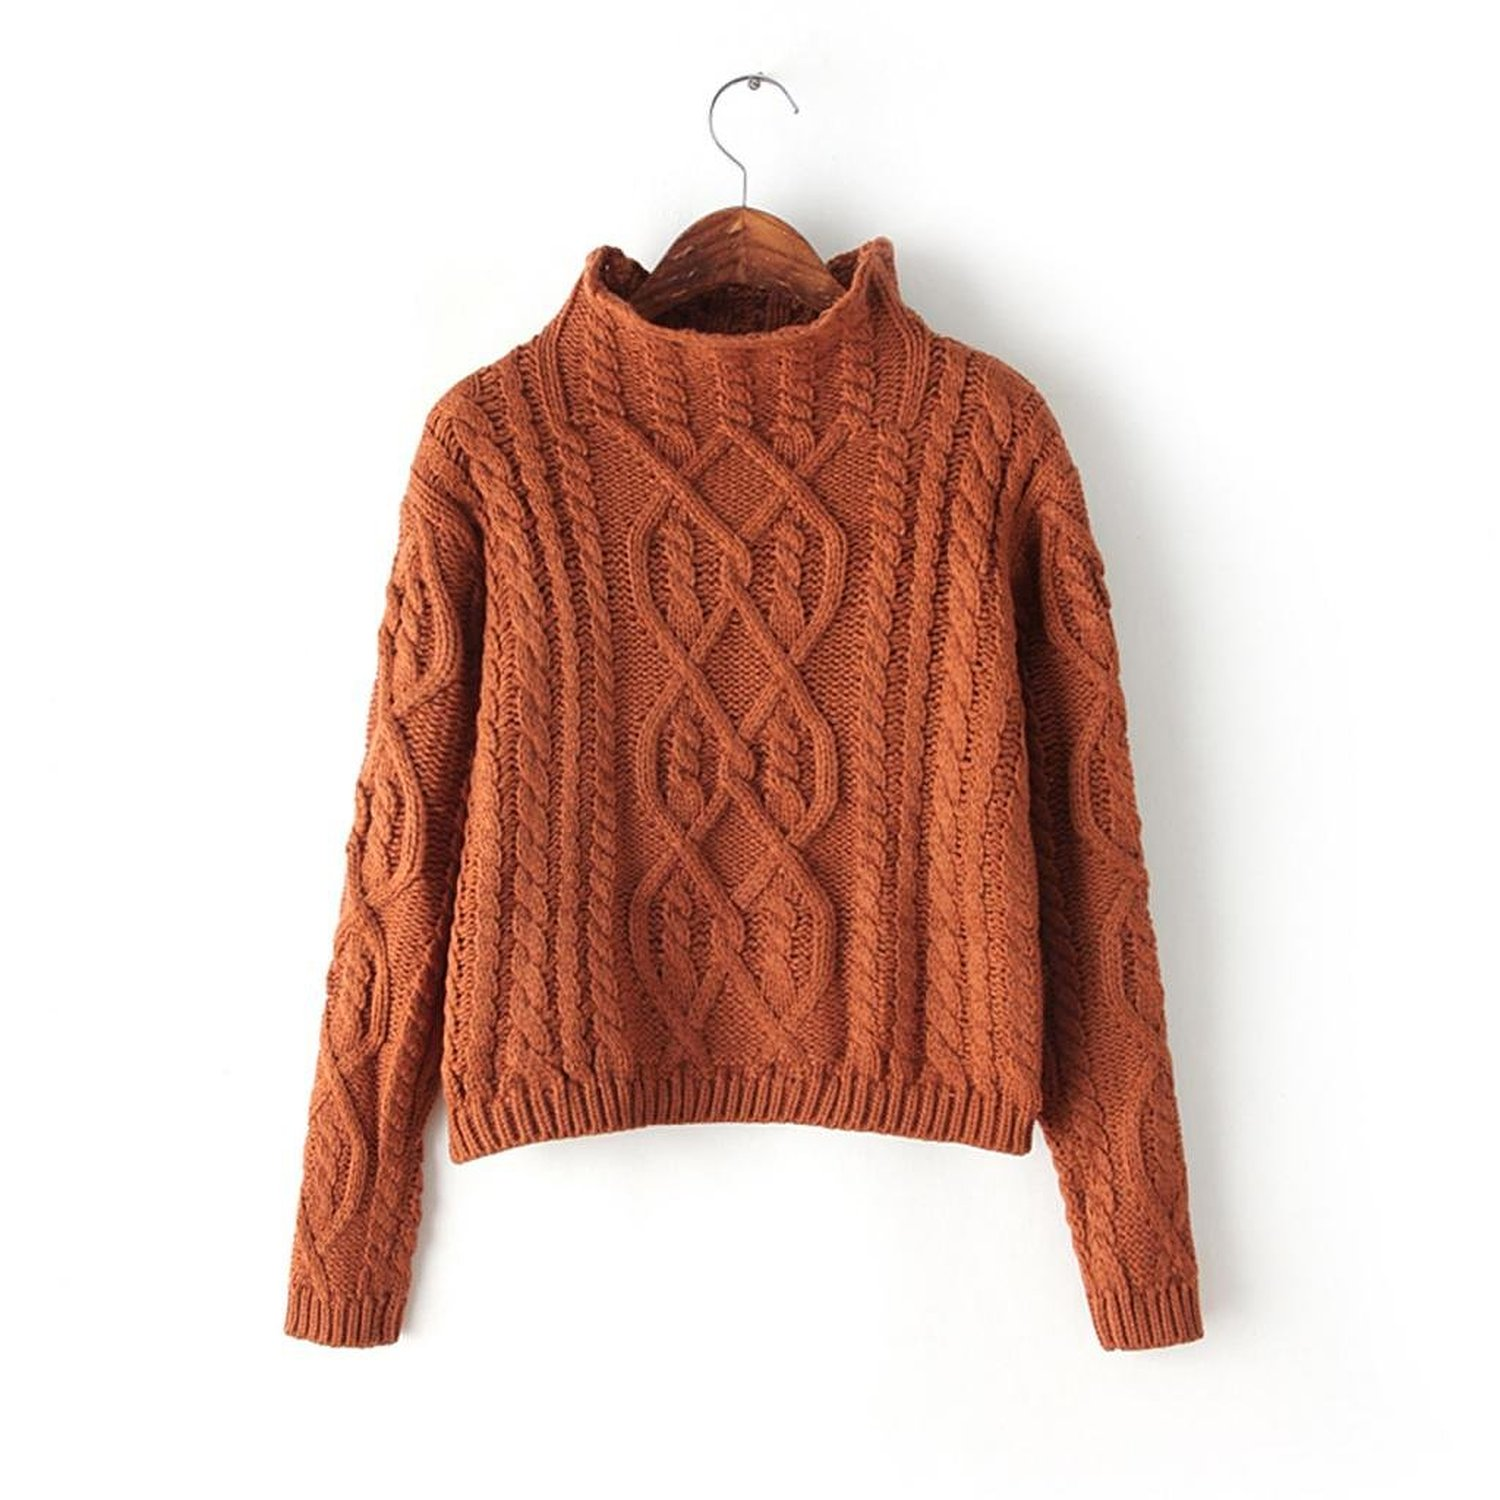 Omine Women's Cable Knit Mock Neck Crop Top Sweater Jumper ...